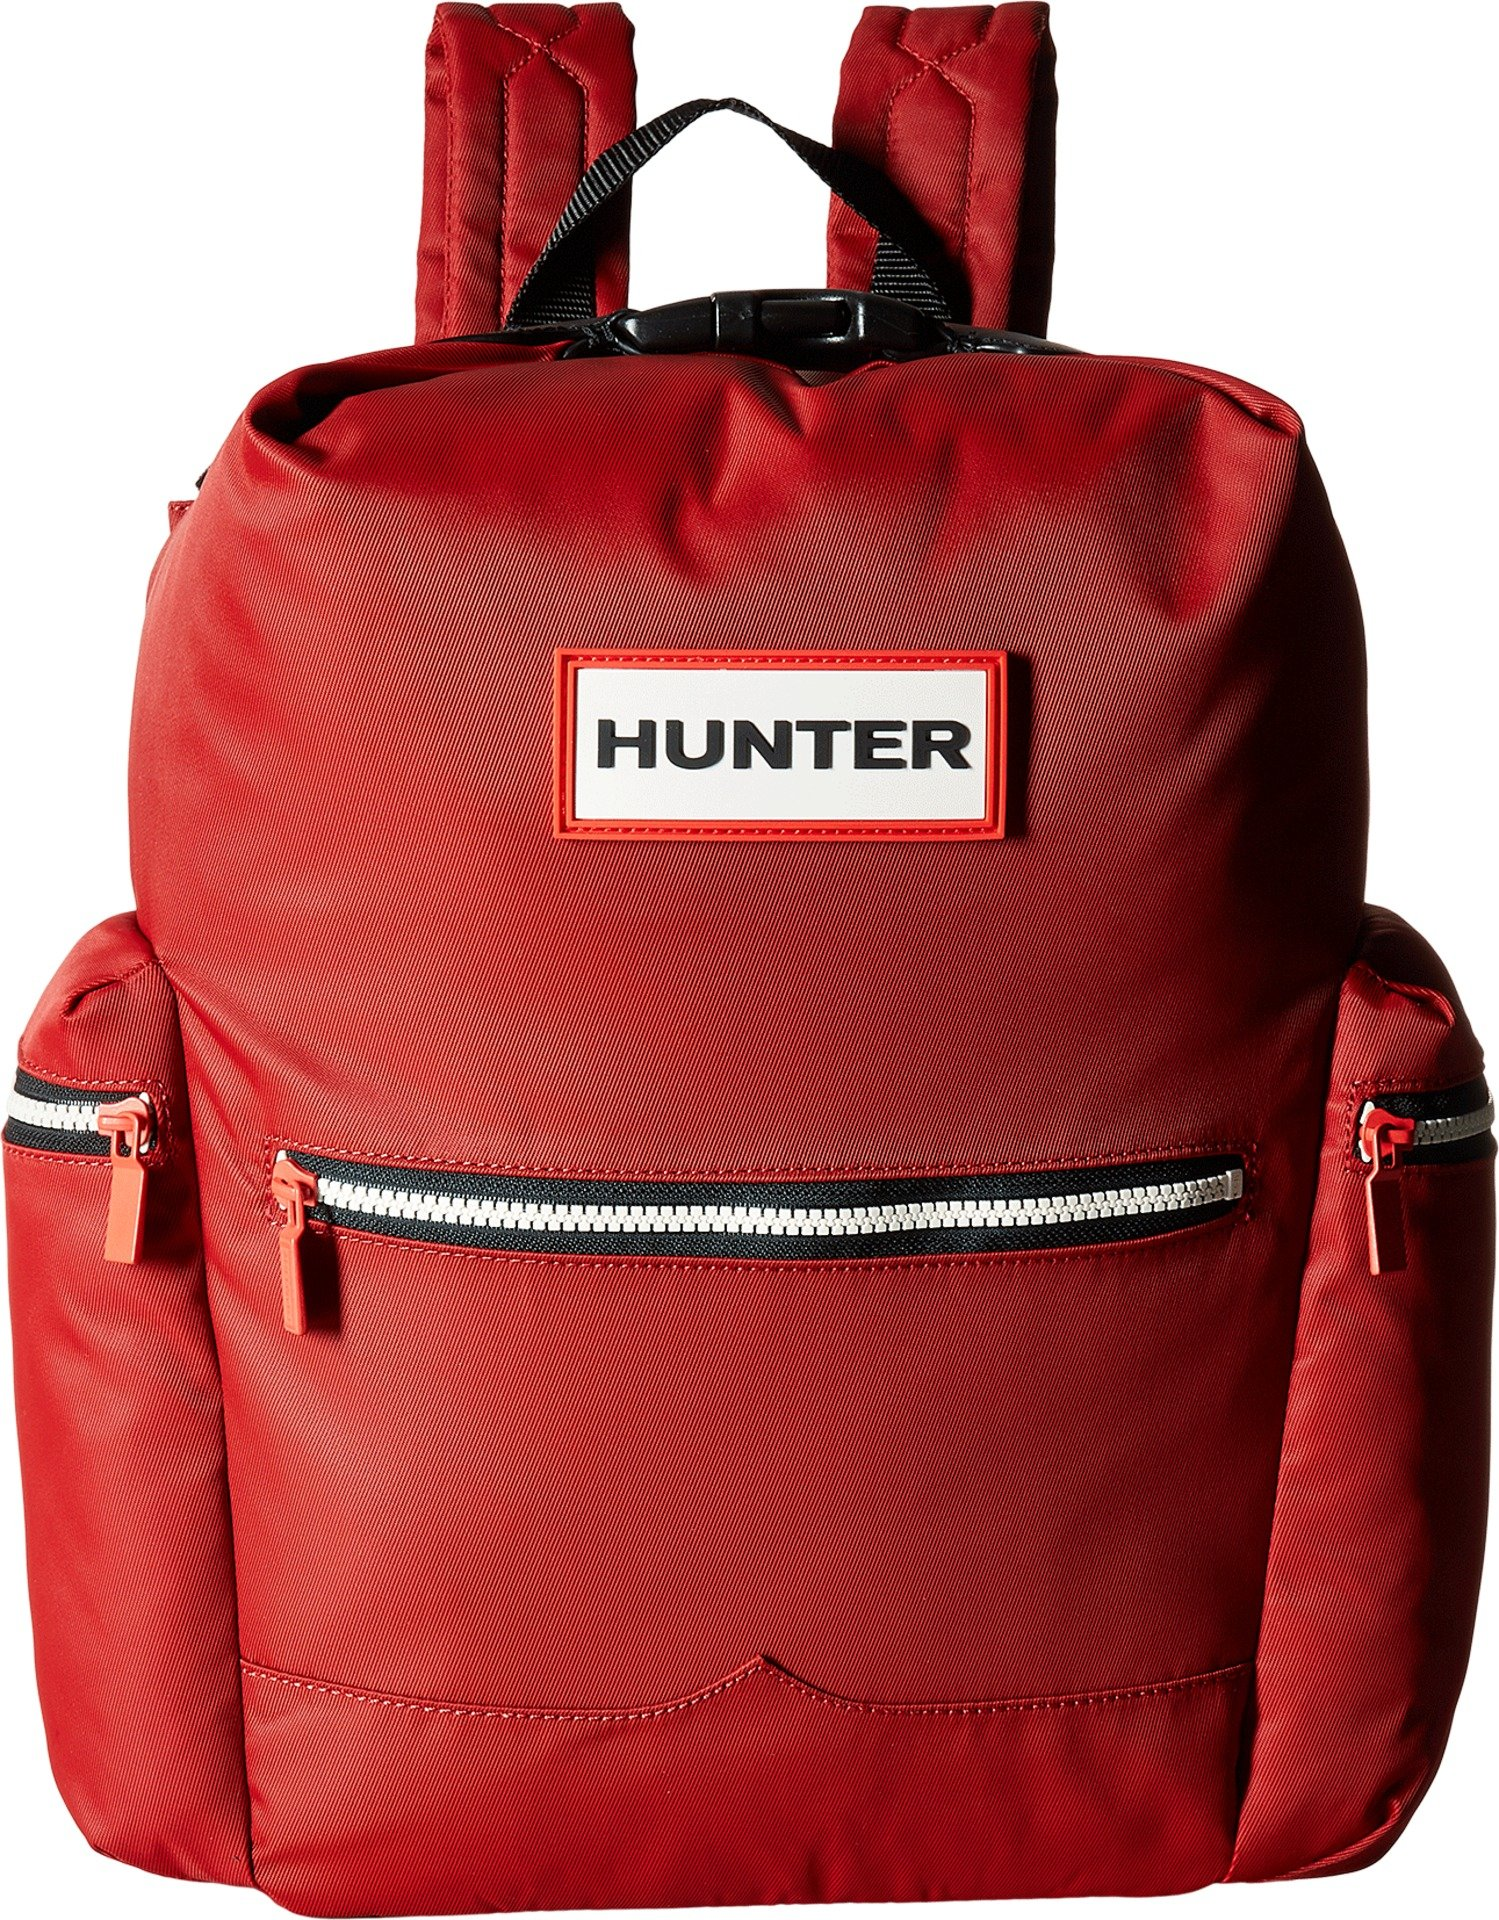 Hunter Unisex Original Backpack Nylon Military Red Backpack